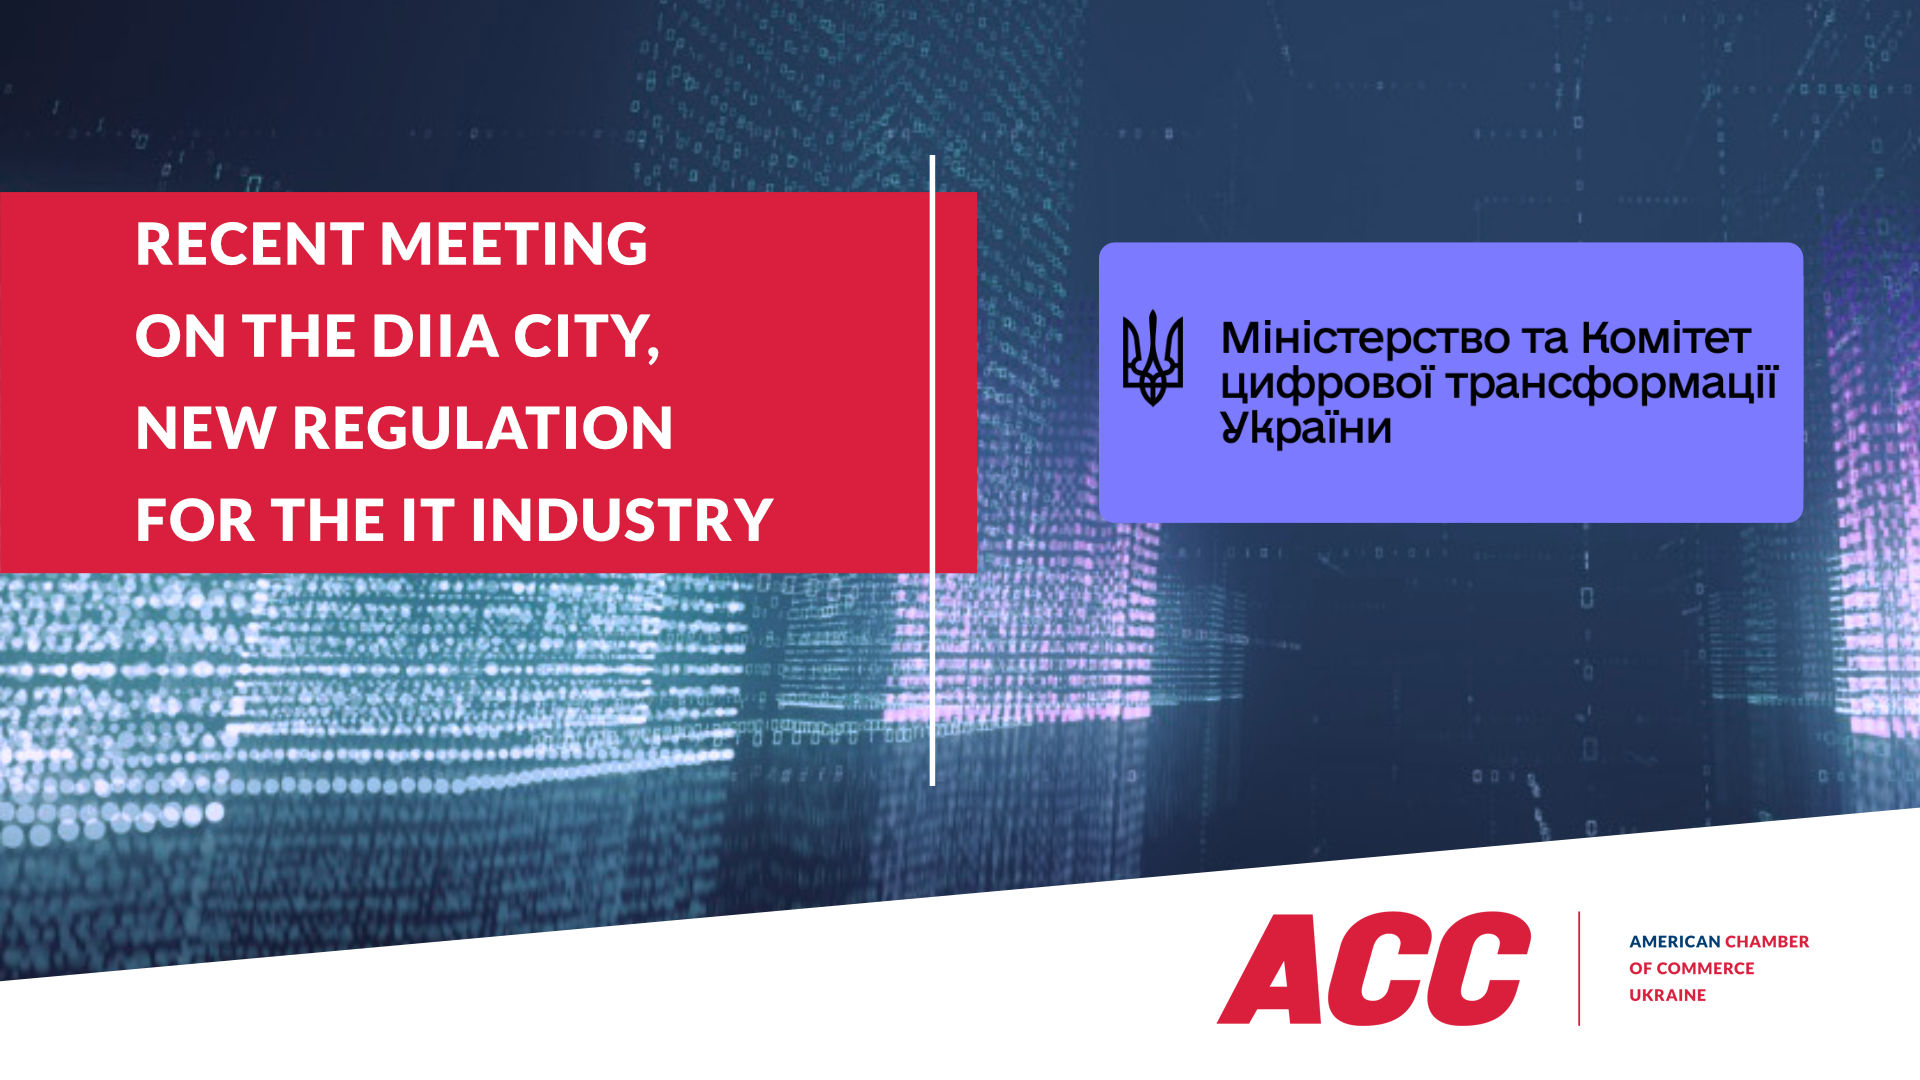 Recent Meeting on the Diia City, New Regulation for the IT industry